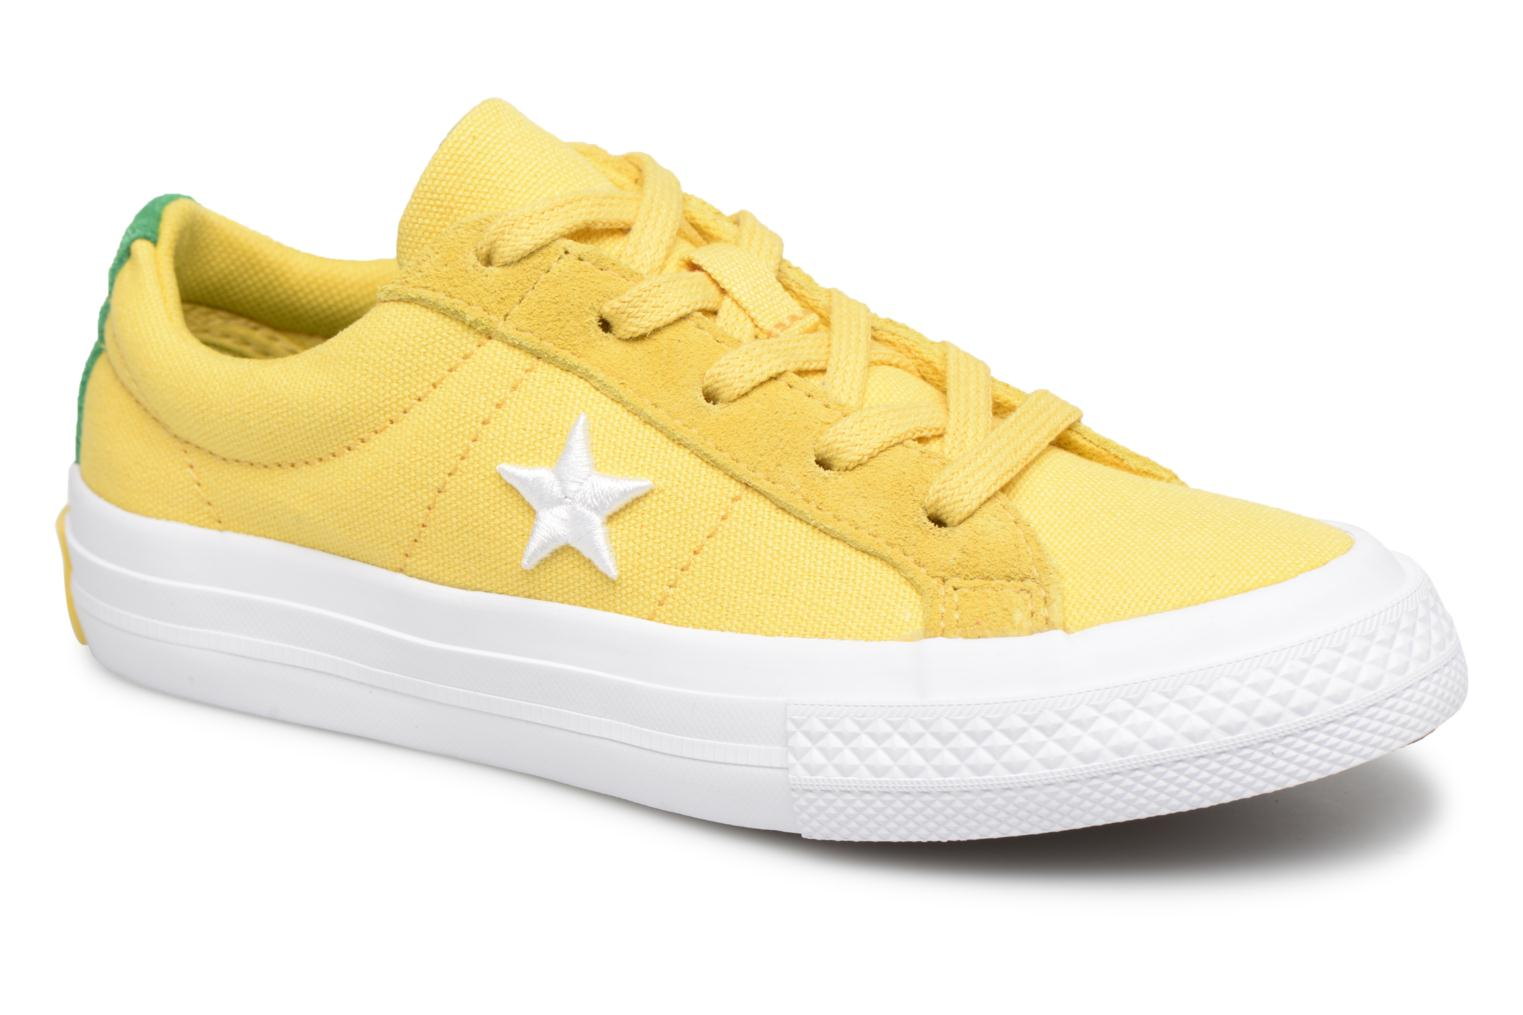 Converse One Star Country Pride Ox